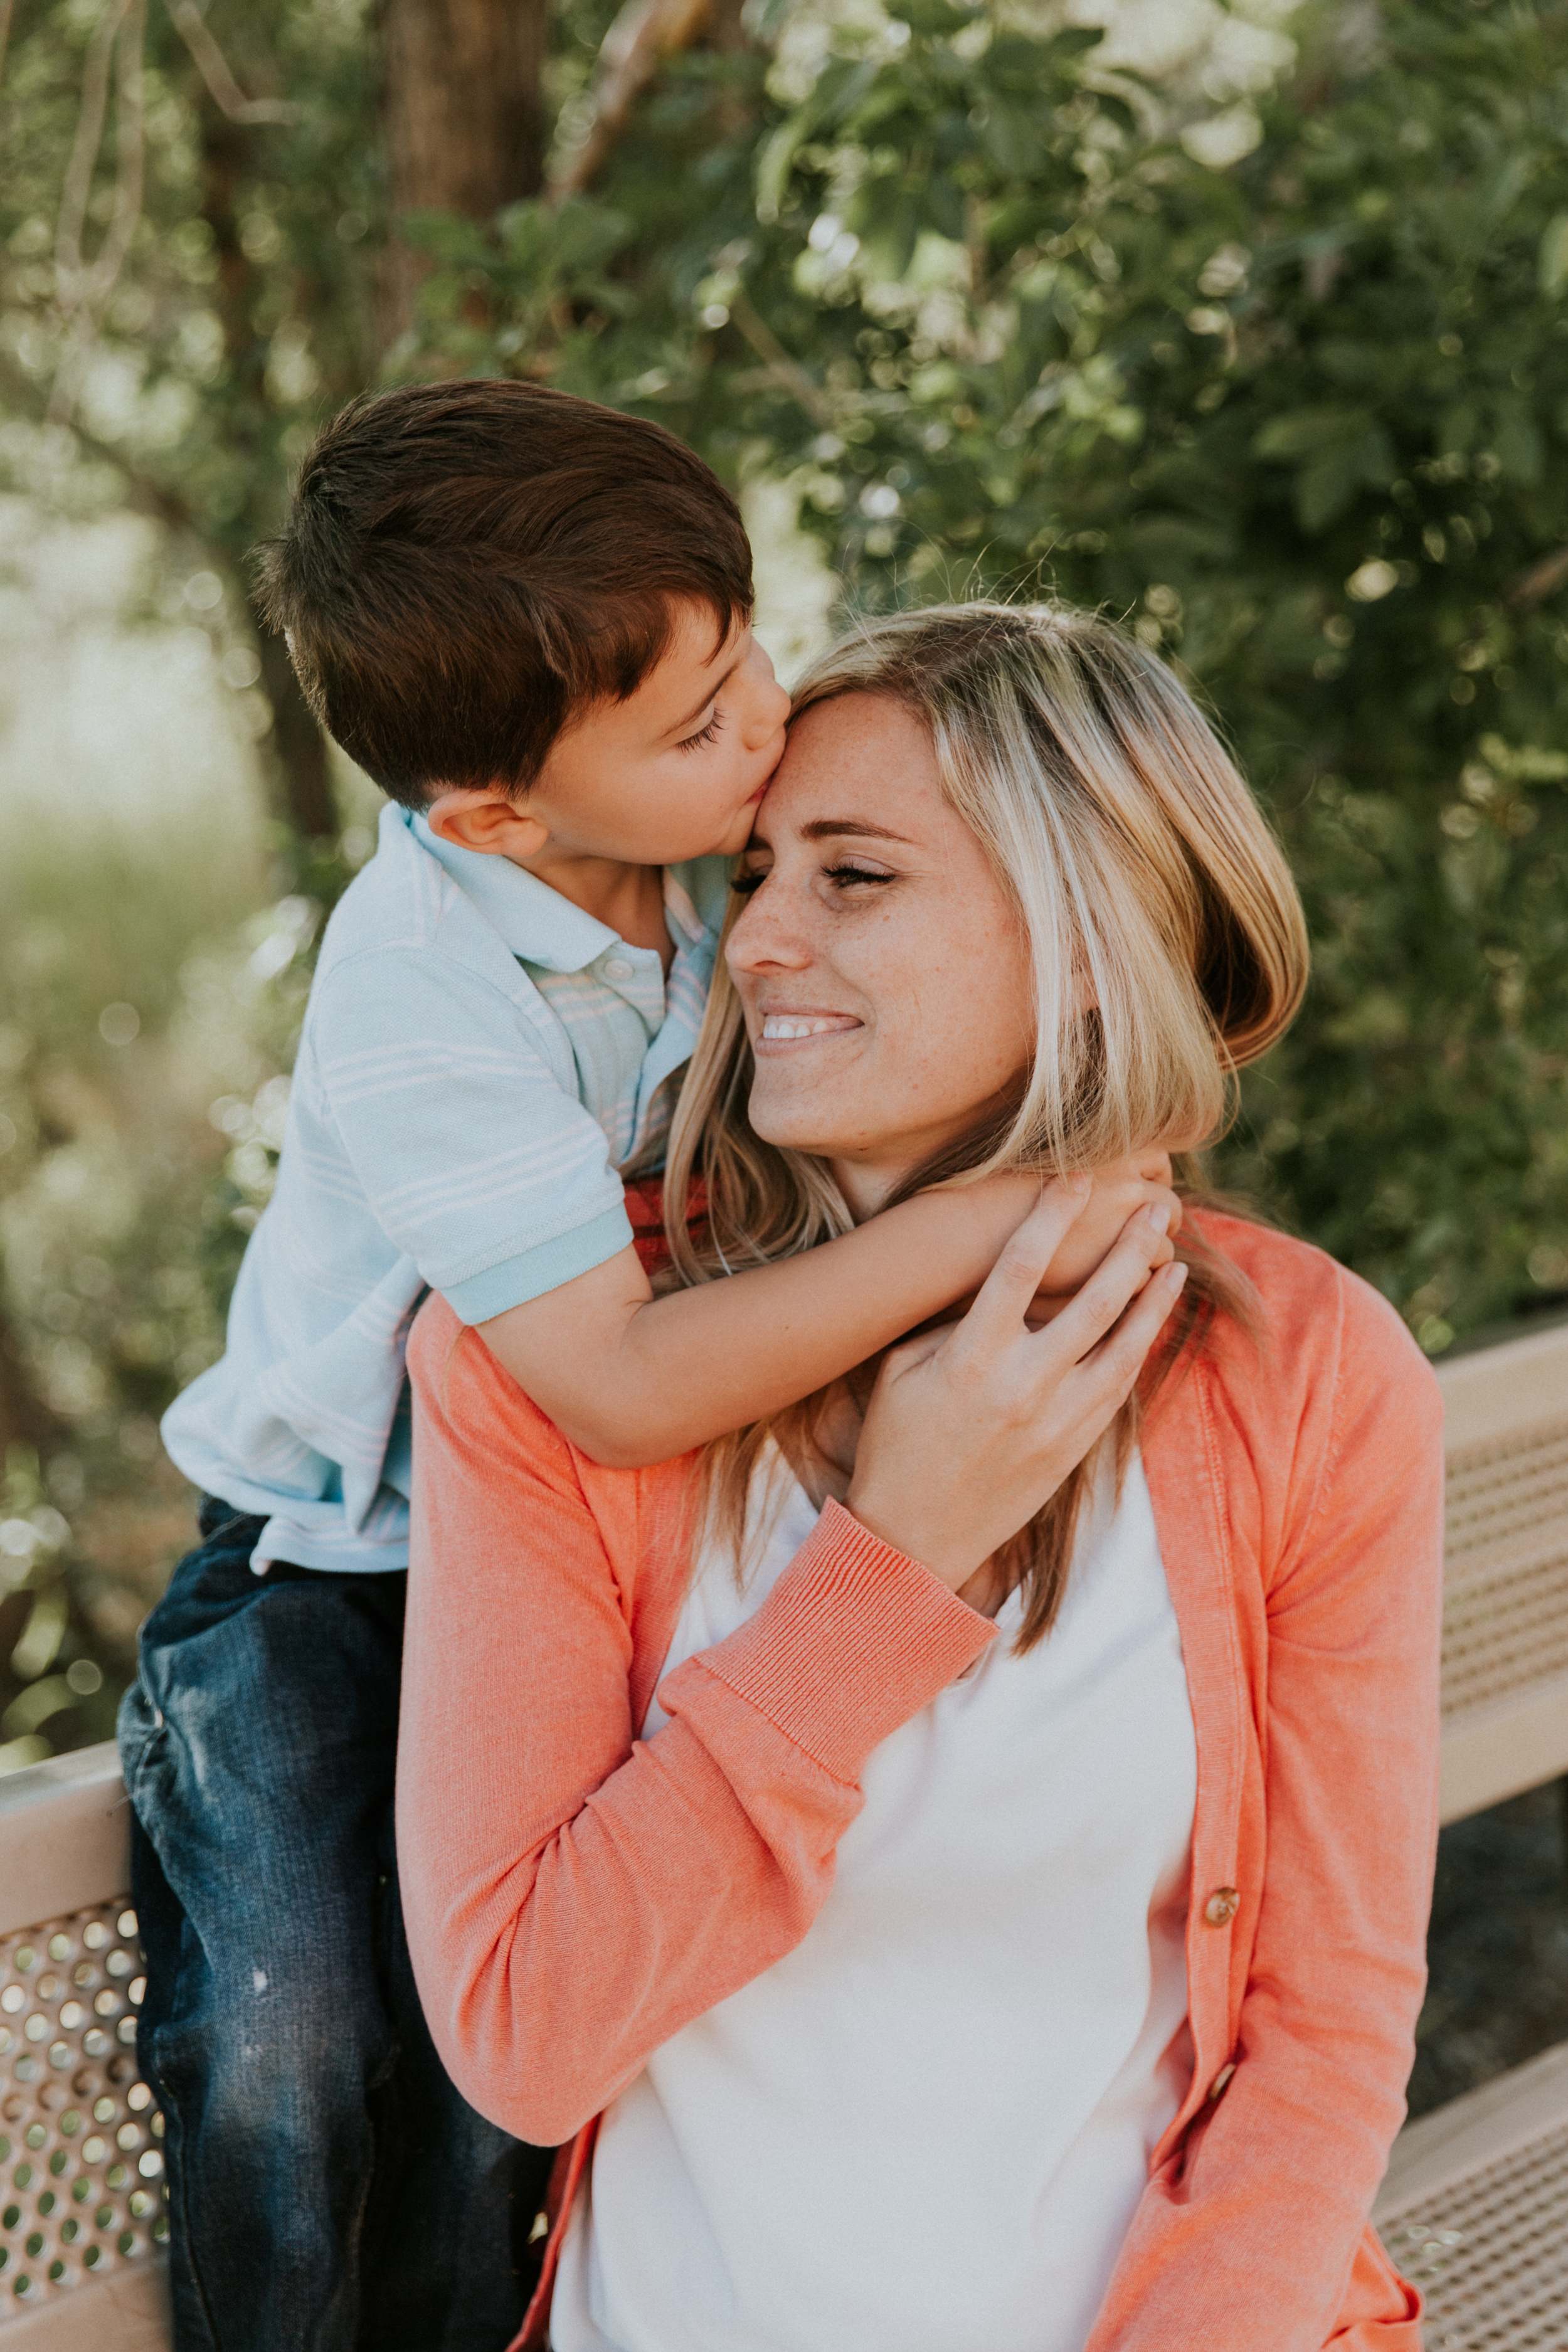 Family Pictures - Mother and son - family - Las Vegas Photographer - Las Vegas - Calico Basin - Red Rock - Photographer - Family Photographer - Family Photography - Las Vegas Lifestyle Photography